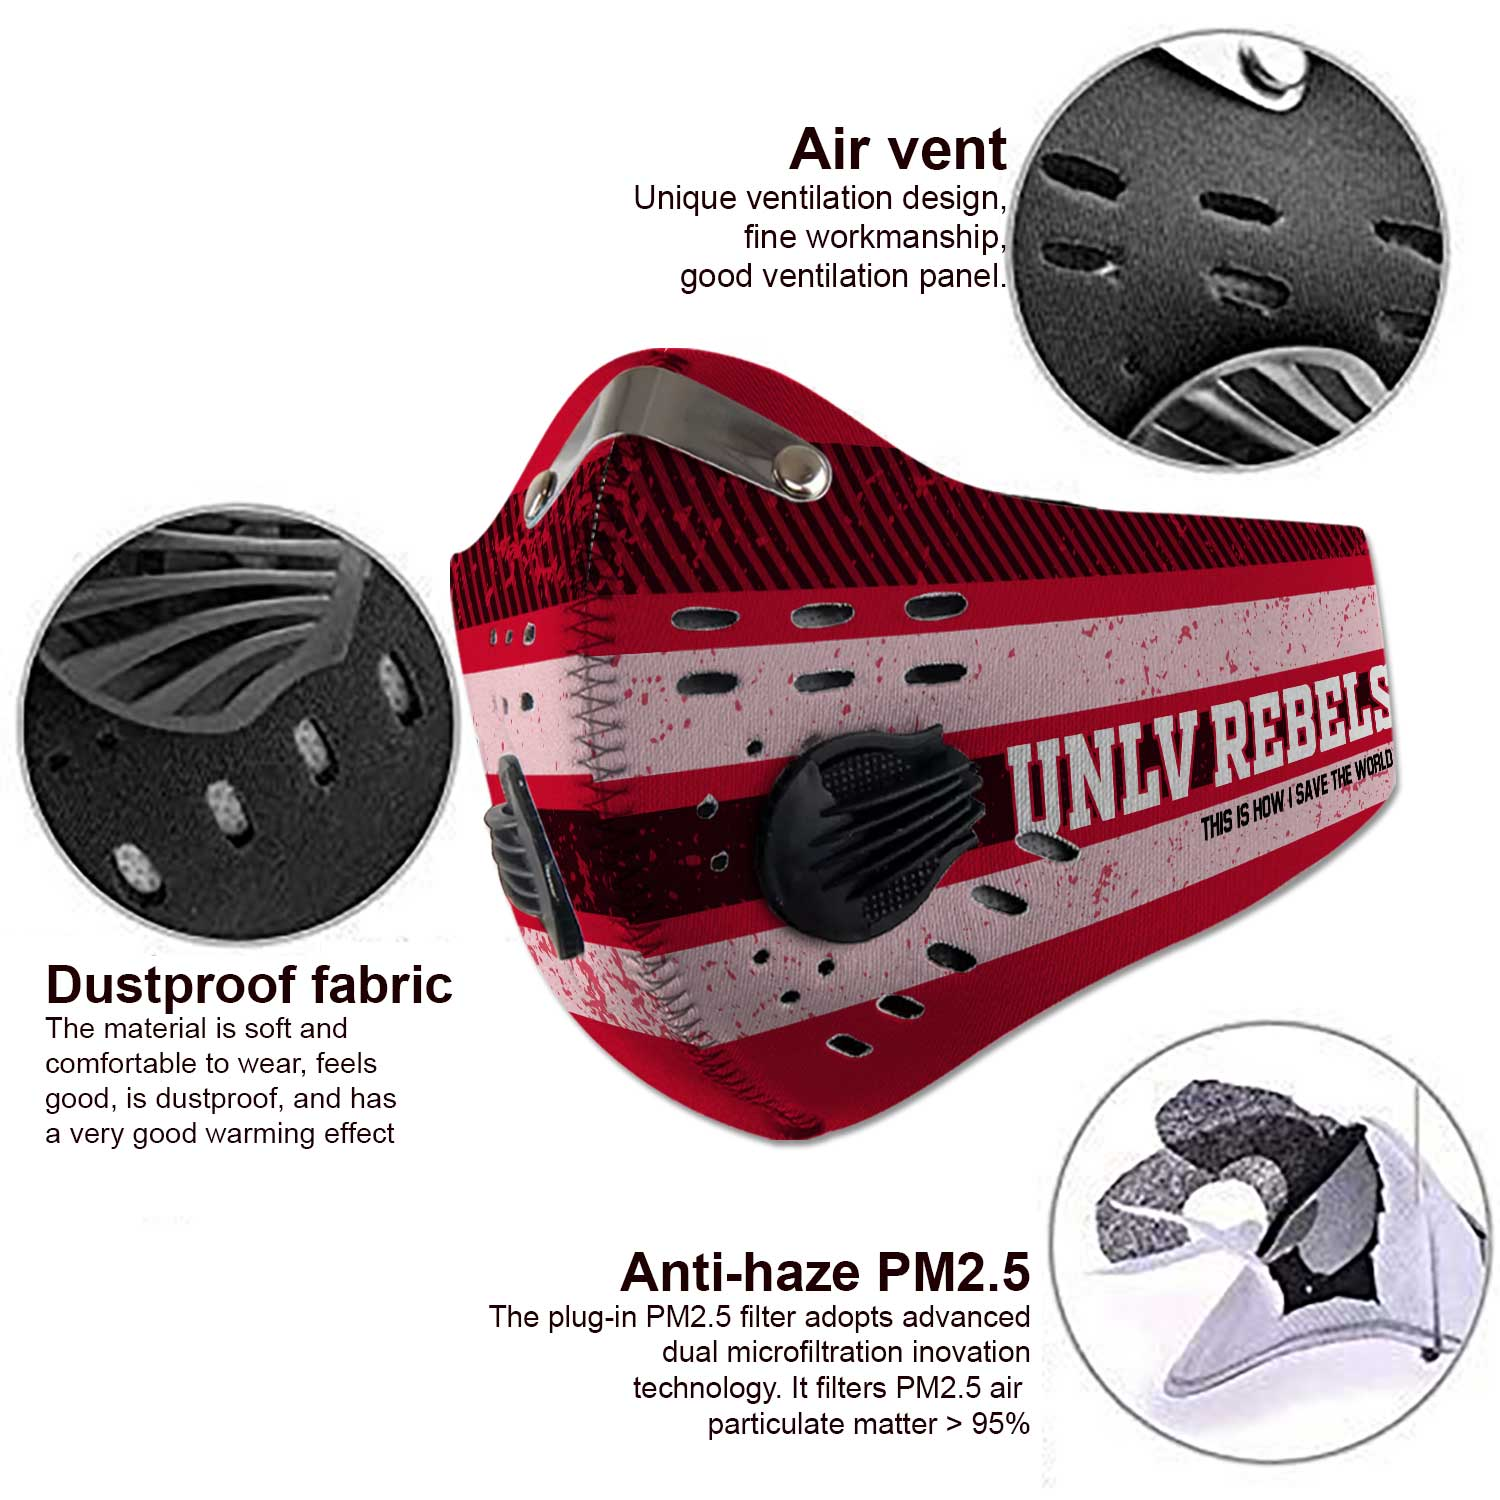 UNLV rebels this is how i save the world carbon filter face mask 3